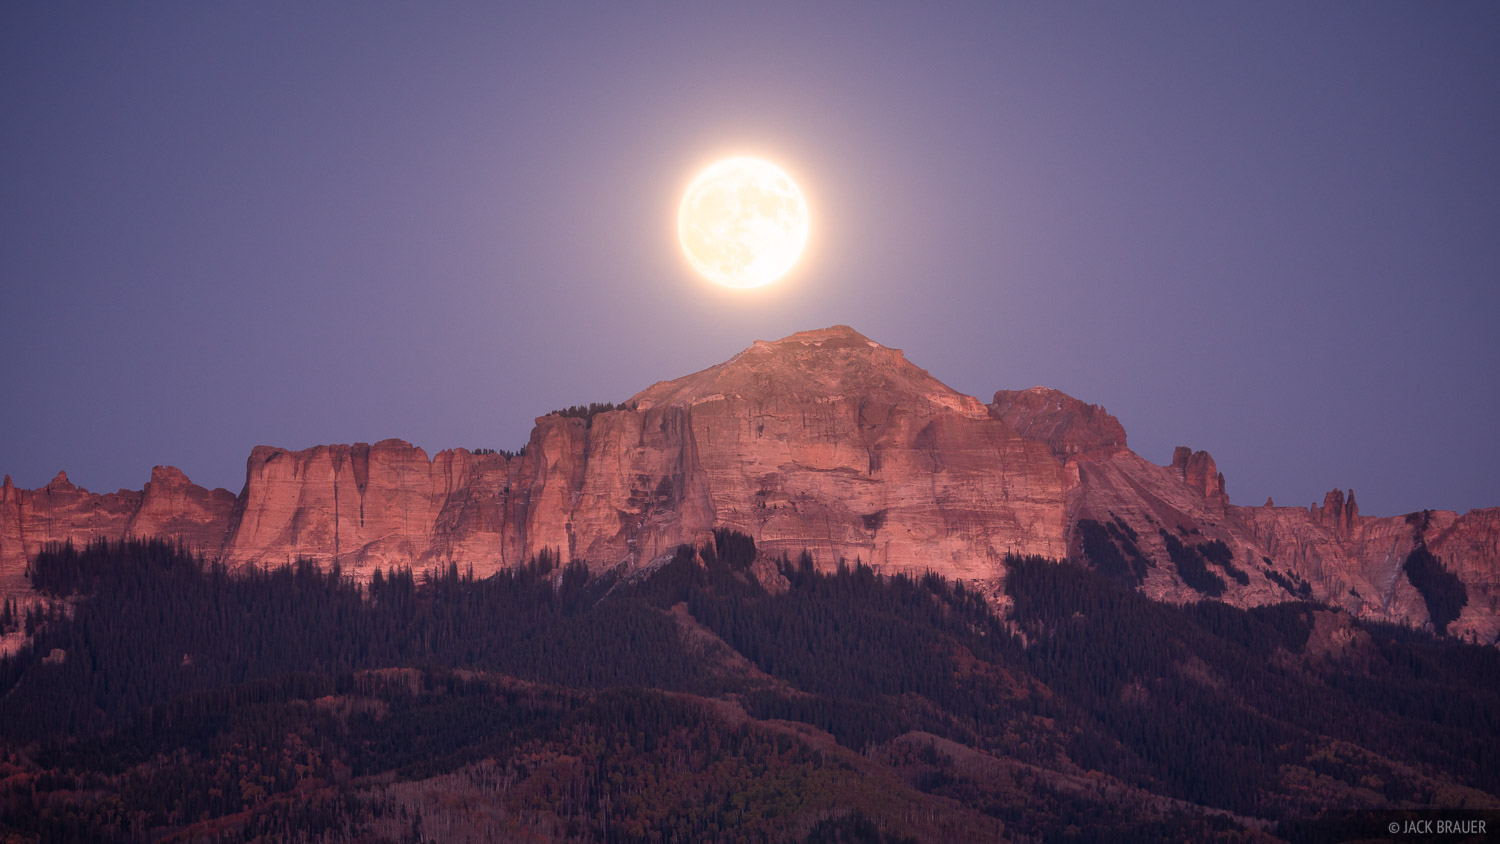 Moonrise behind Courthouse Mountain as seen from the town of Ridgway, Colorado.